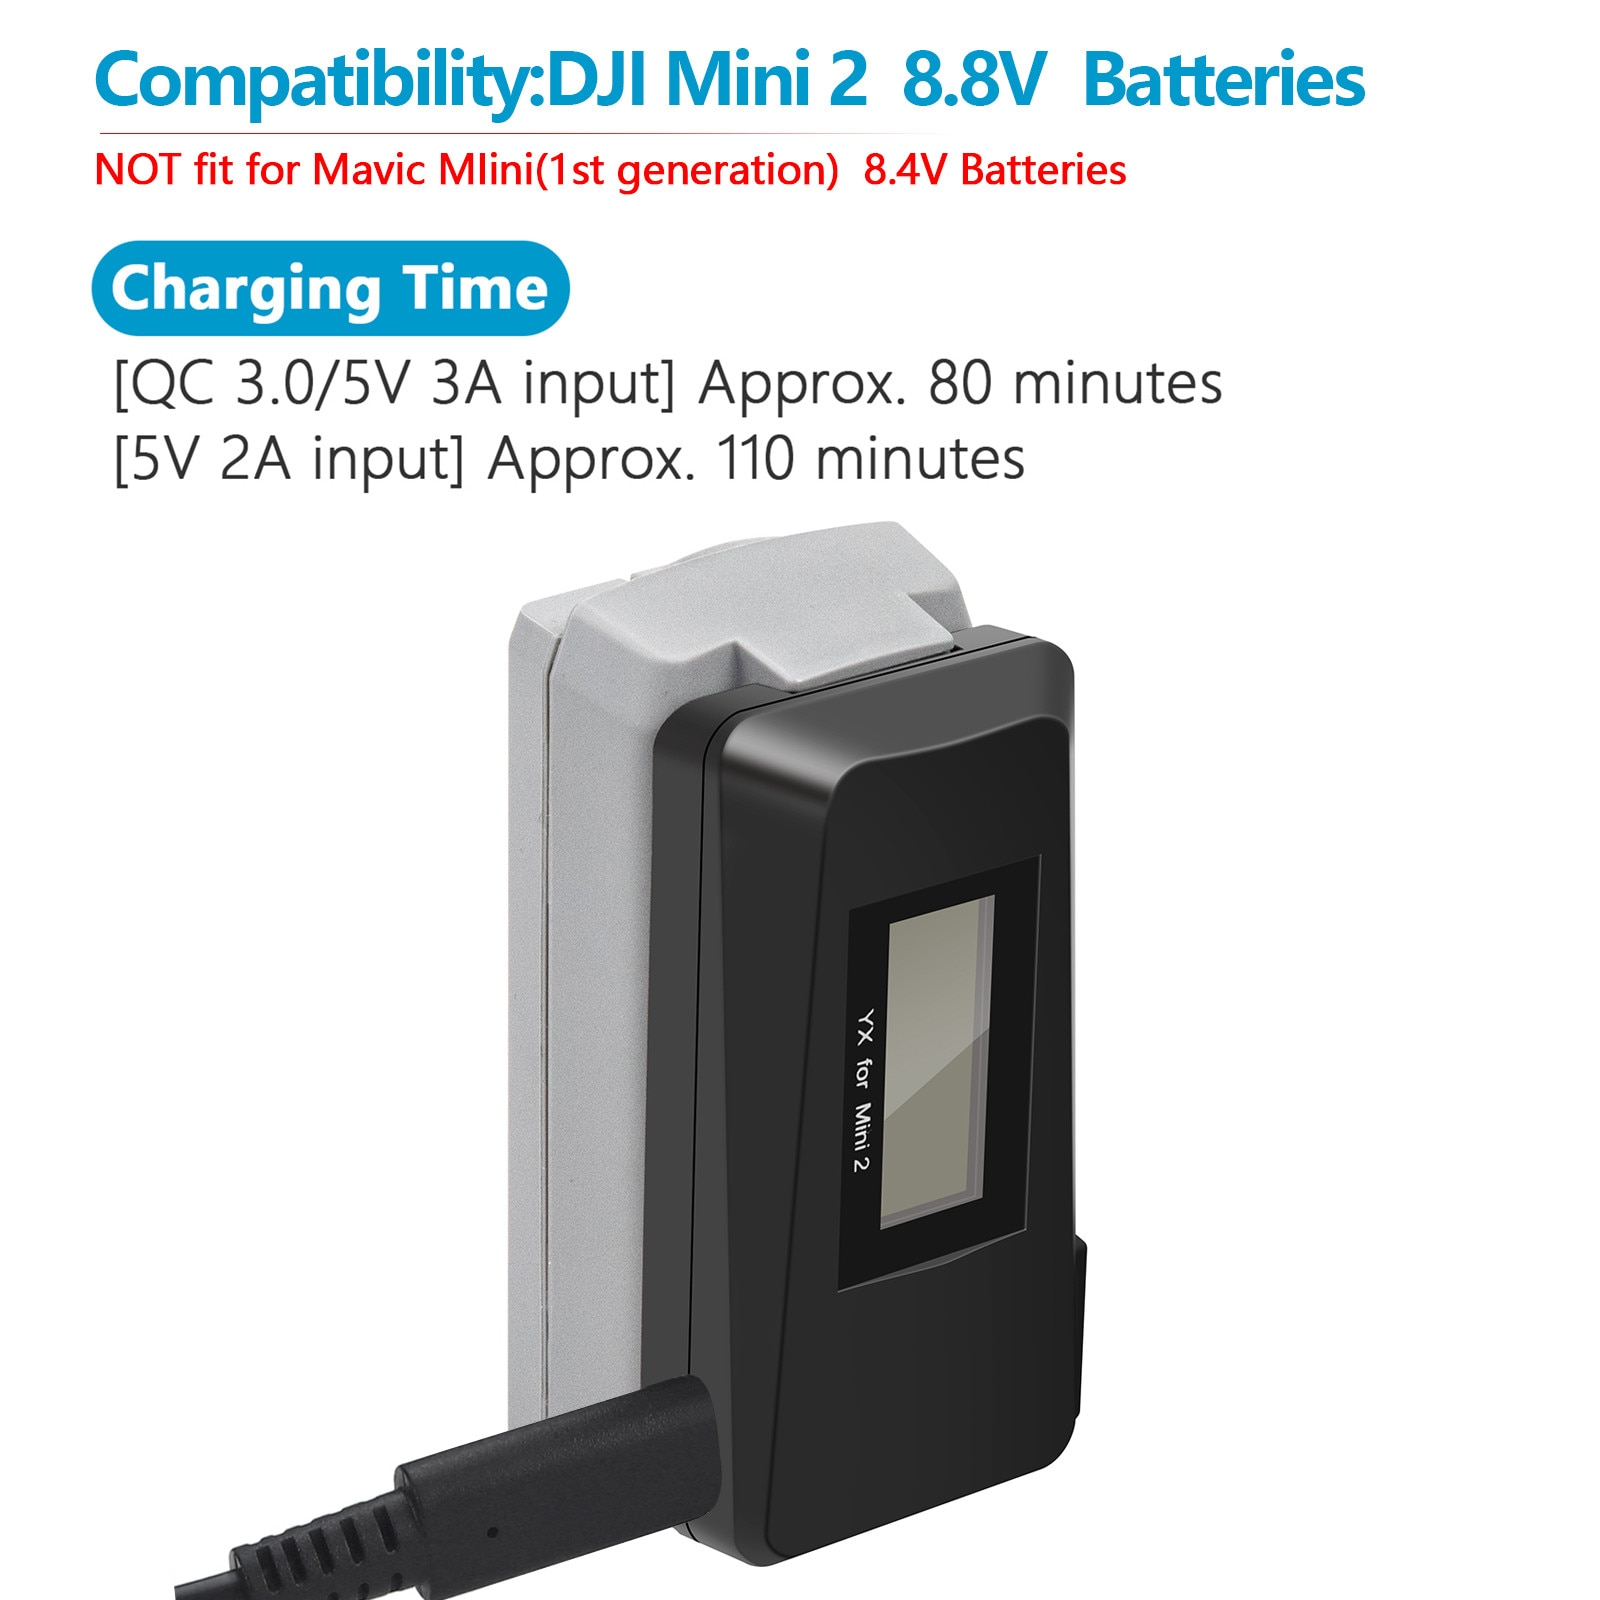 Fast Charger Battery Display Usb Charging For Dji Mavic Mini 2 Drone Accessories Screen Digital Display Power Charger charger uninterruptible power energy гарант 2000 economical idle running colored led display